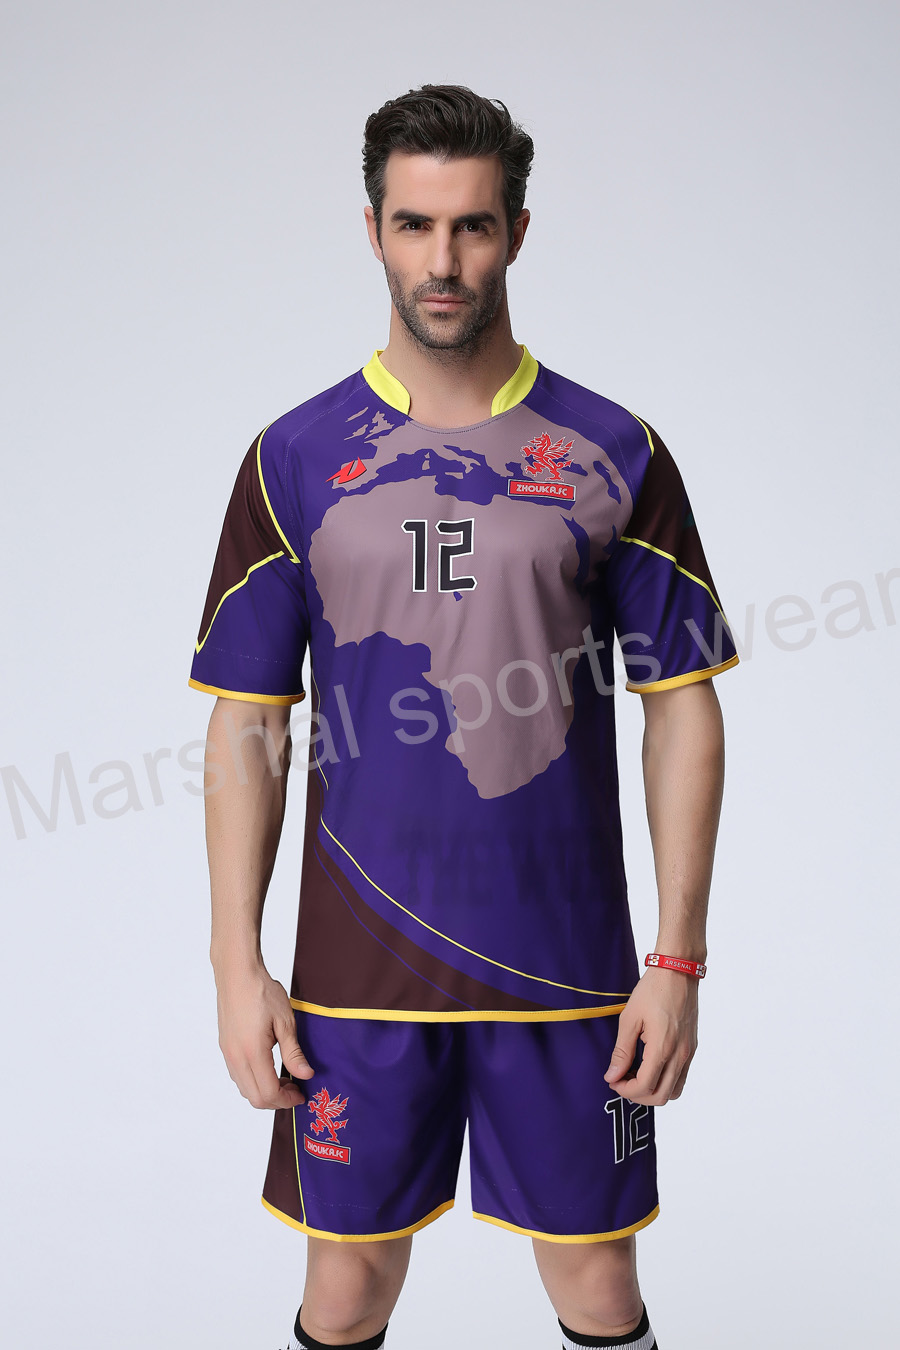 Design your own t-shirt hot pink - Purple Color Soccer Uniform We Can Do Your Own Design Print Logo Name Color Number As Your Request